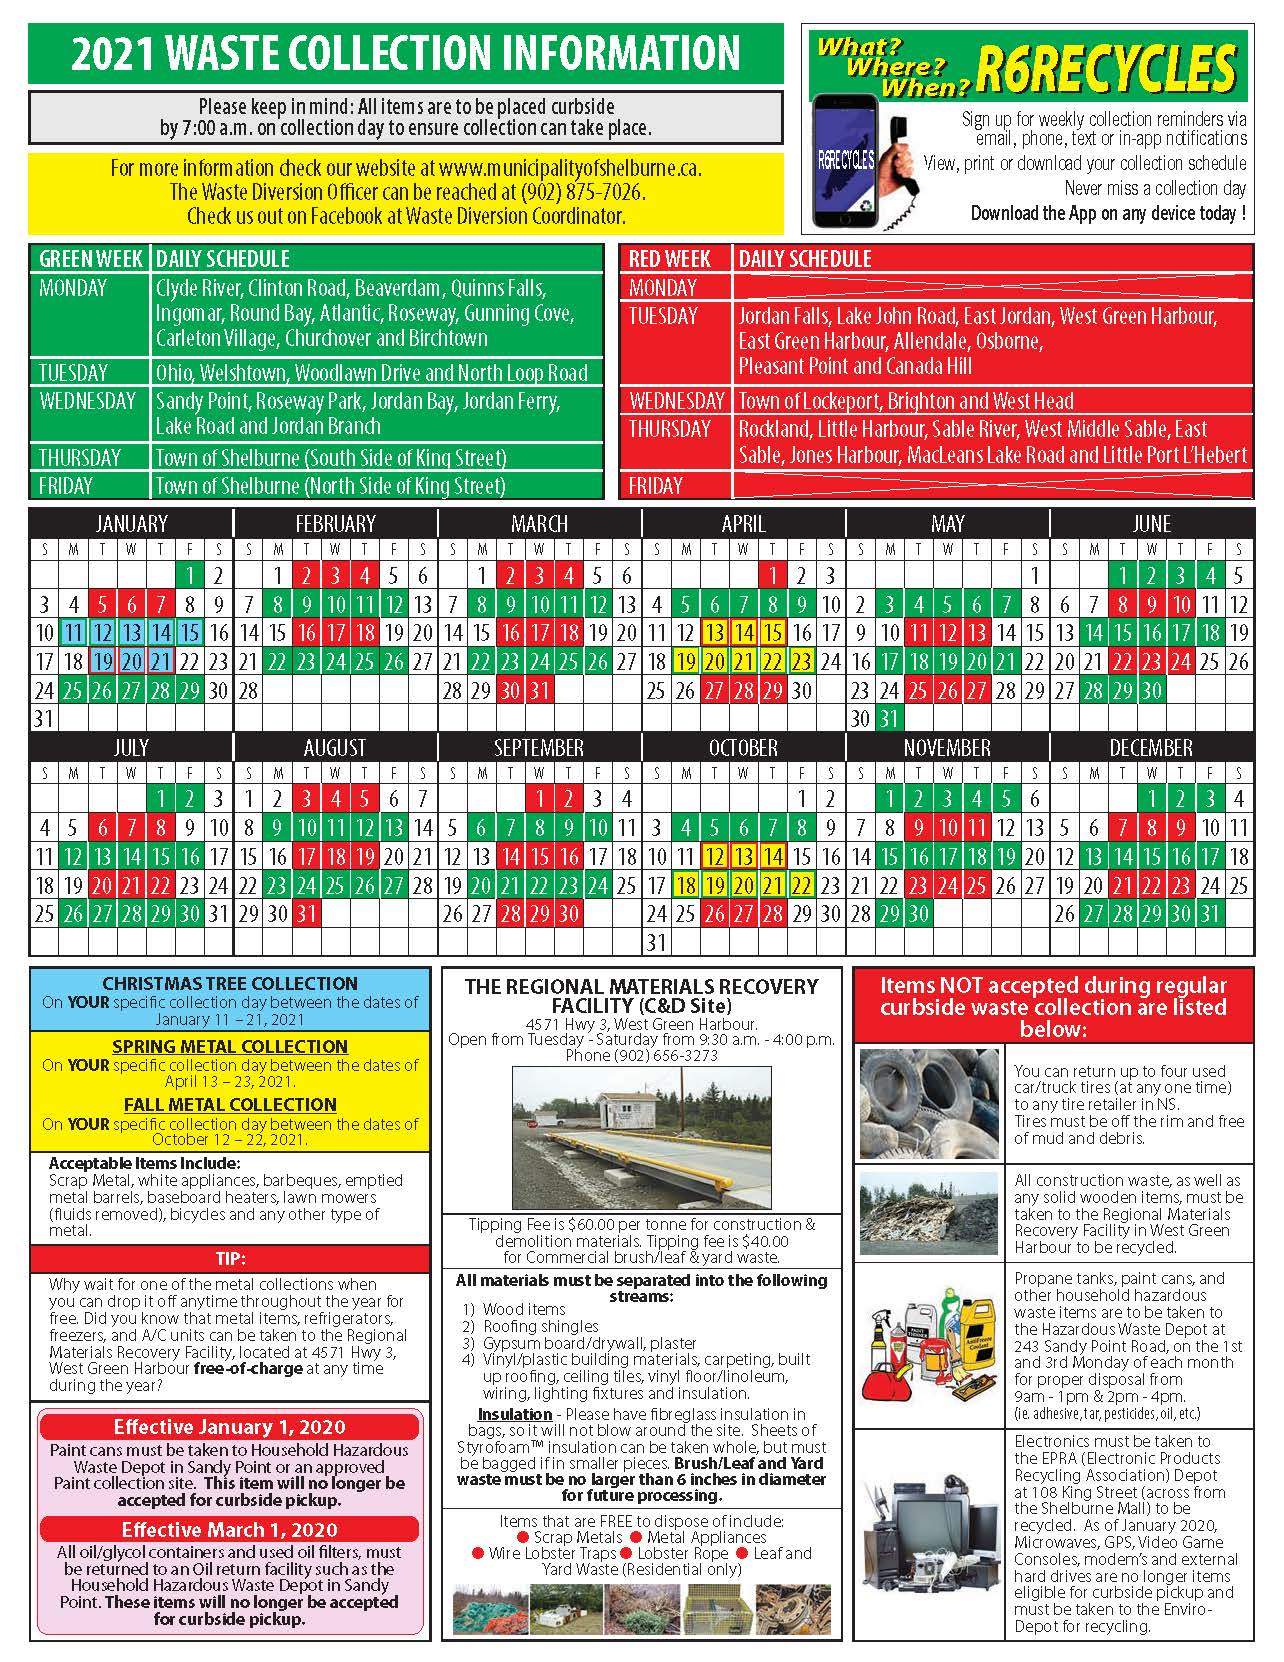 Trash Pickup Schedule Christmas 2021 Waste Collection Municipal Services